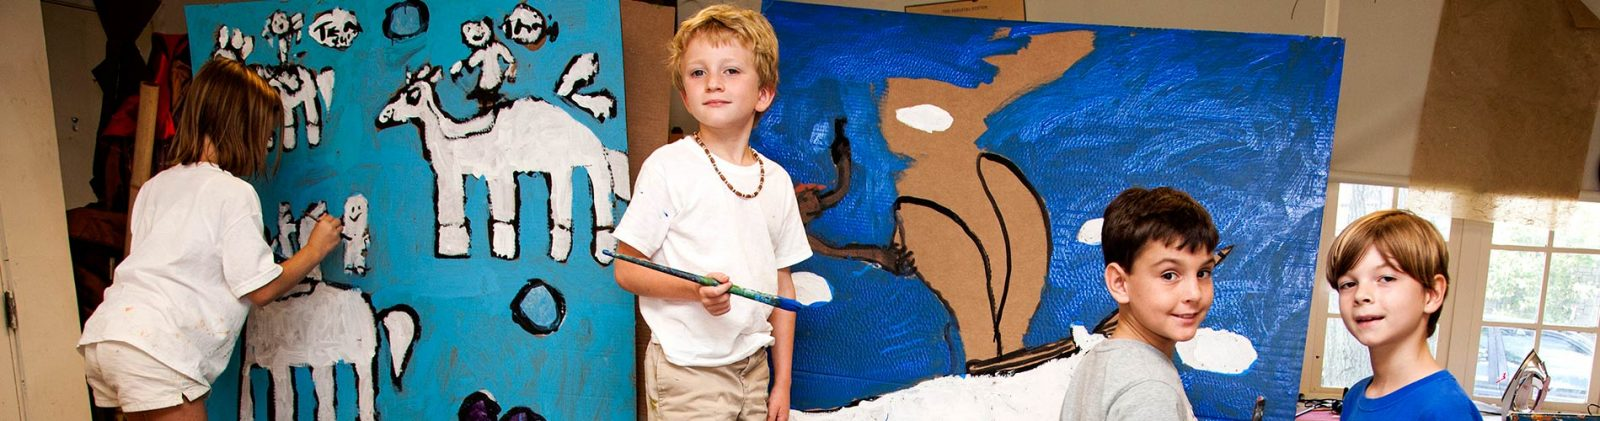 Register for CDCA Kids Summer Arts Camp